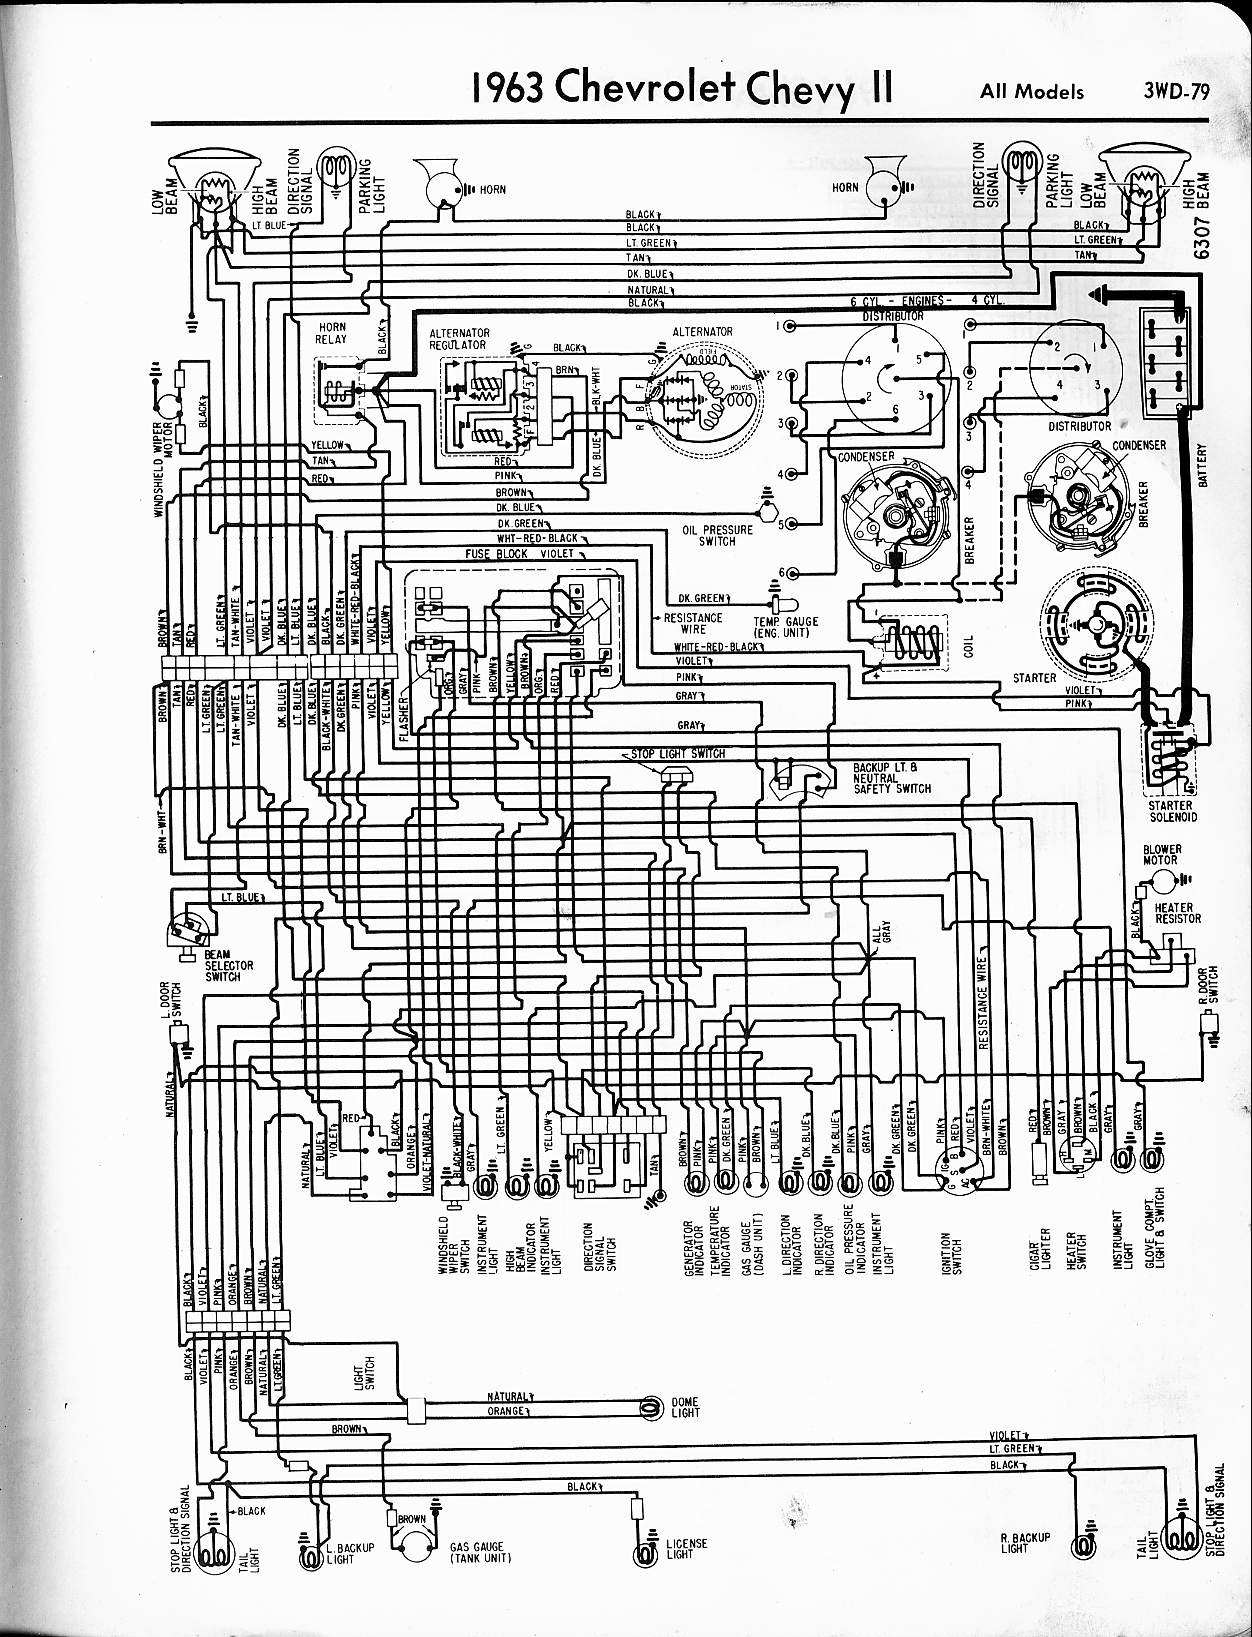 57 - 65 chevy wiring diagrams 1963 chevrolet wiring diagram 1963 chevrolet pickup wiring